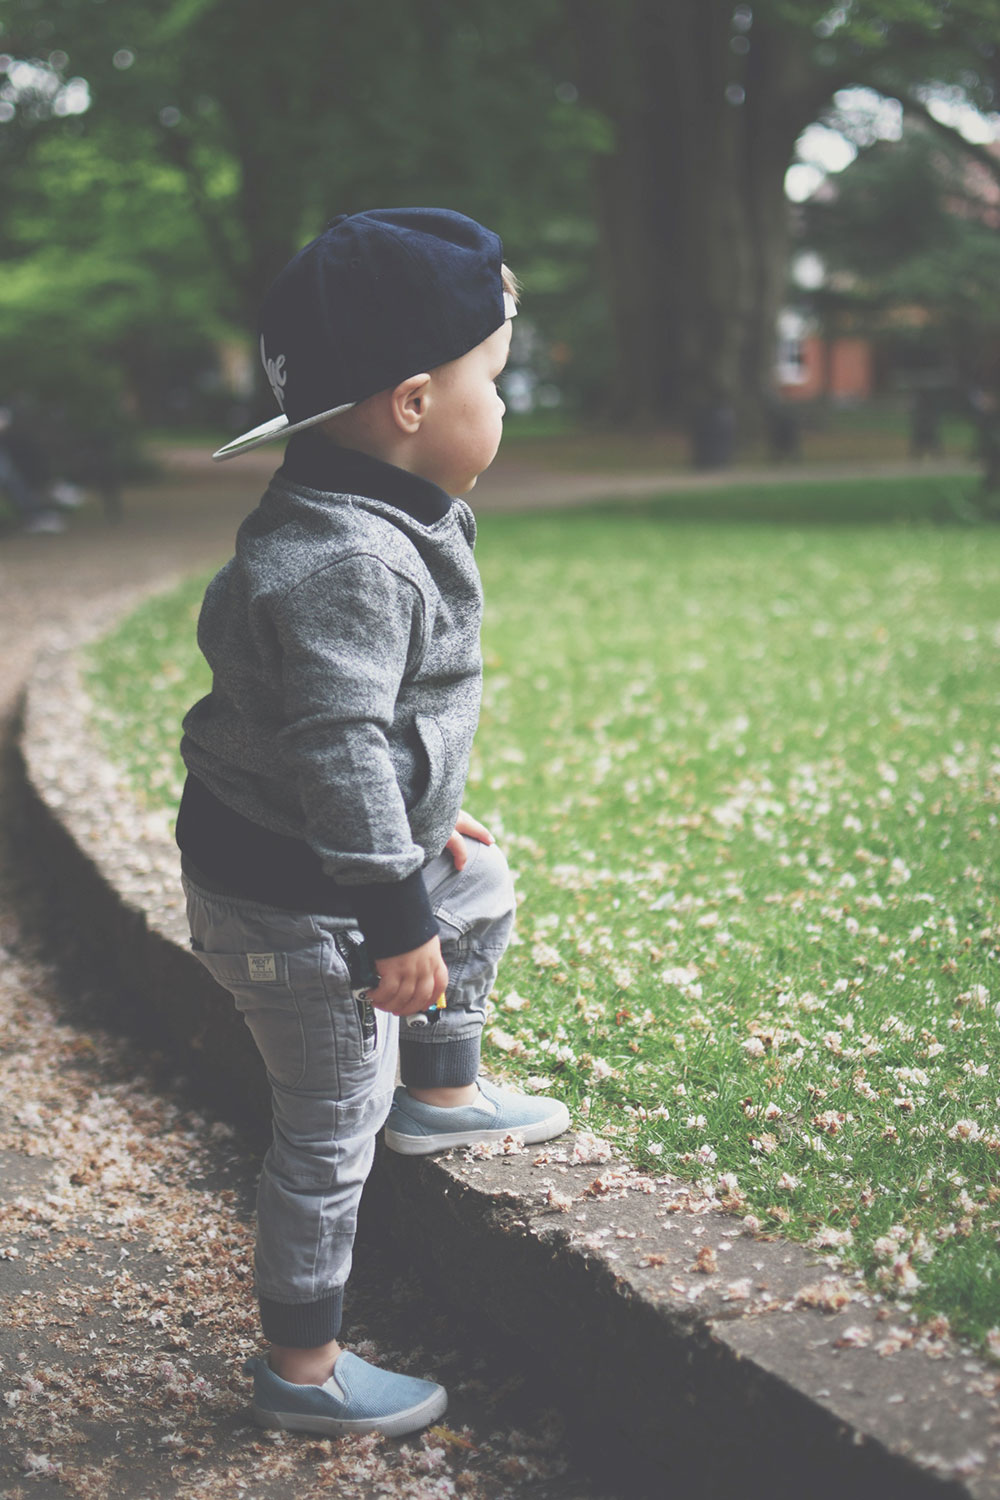 Fashion Friday; Grey slacks & baseball caps // 042 - Toddler wearing H&M 'ledge' suede baseball cap, H&M black 'super' lightweight jacket, Next rugby polo and grey trousers and H&M denim slip-ons having fun at the park in Spring